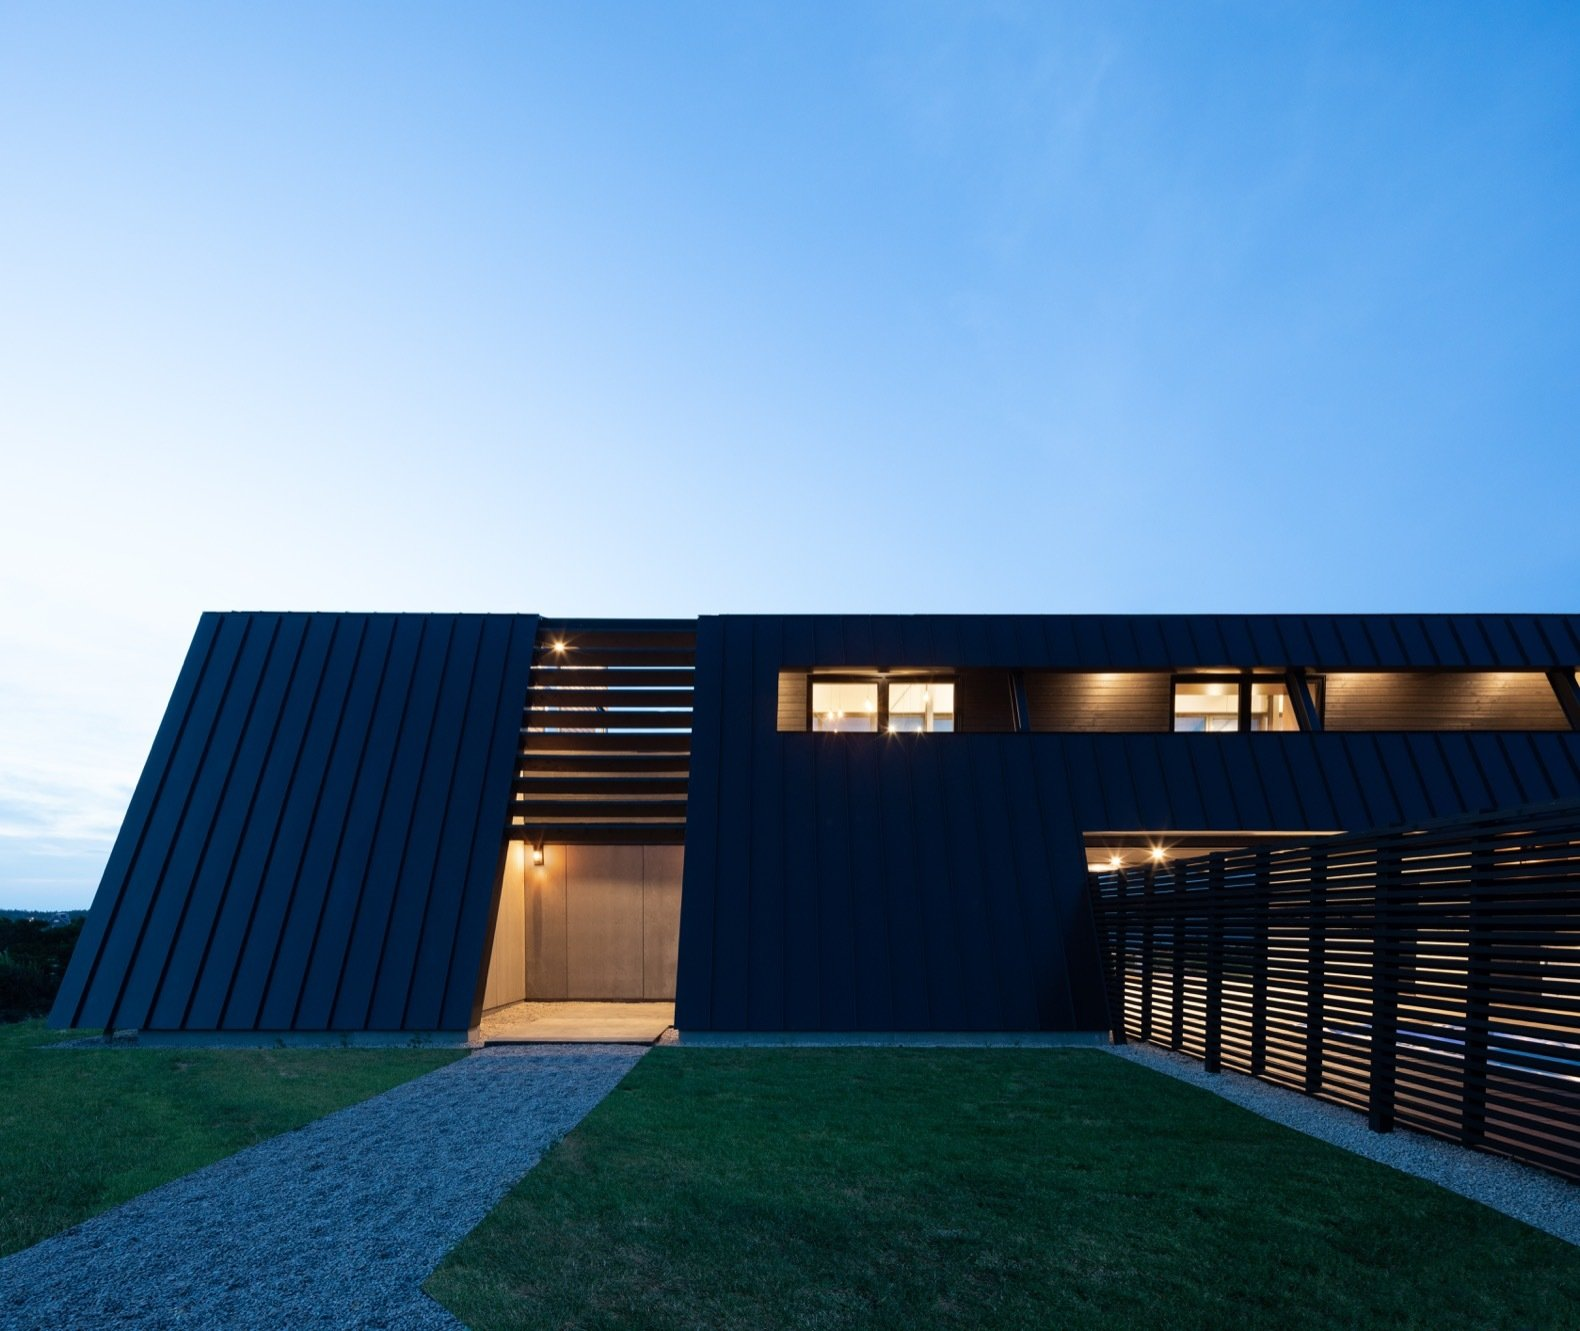 Exterior, Metal Roof Material, Wood Siding Material, House Building Type, Concrete Siding Material, Metal Siding Material, and Saltbox RoofLine A glimpse of the entrance at dusk from the south elevation. To the right is a swimming pool shielded behind wooden fencing.  Photos from A Folded Steel Roof Shields a Fortress-Like Abode in Nova Scotia